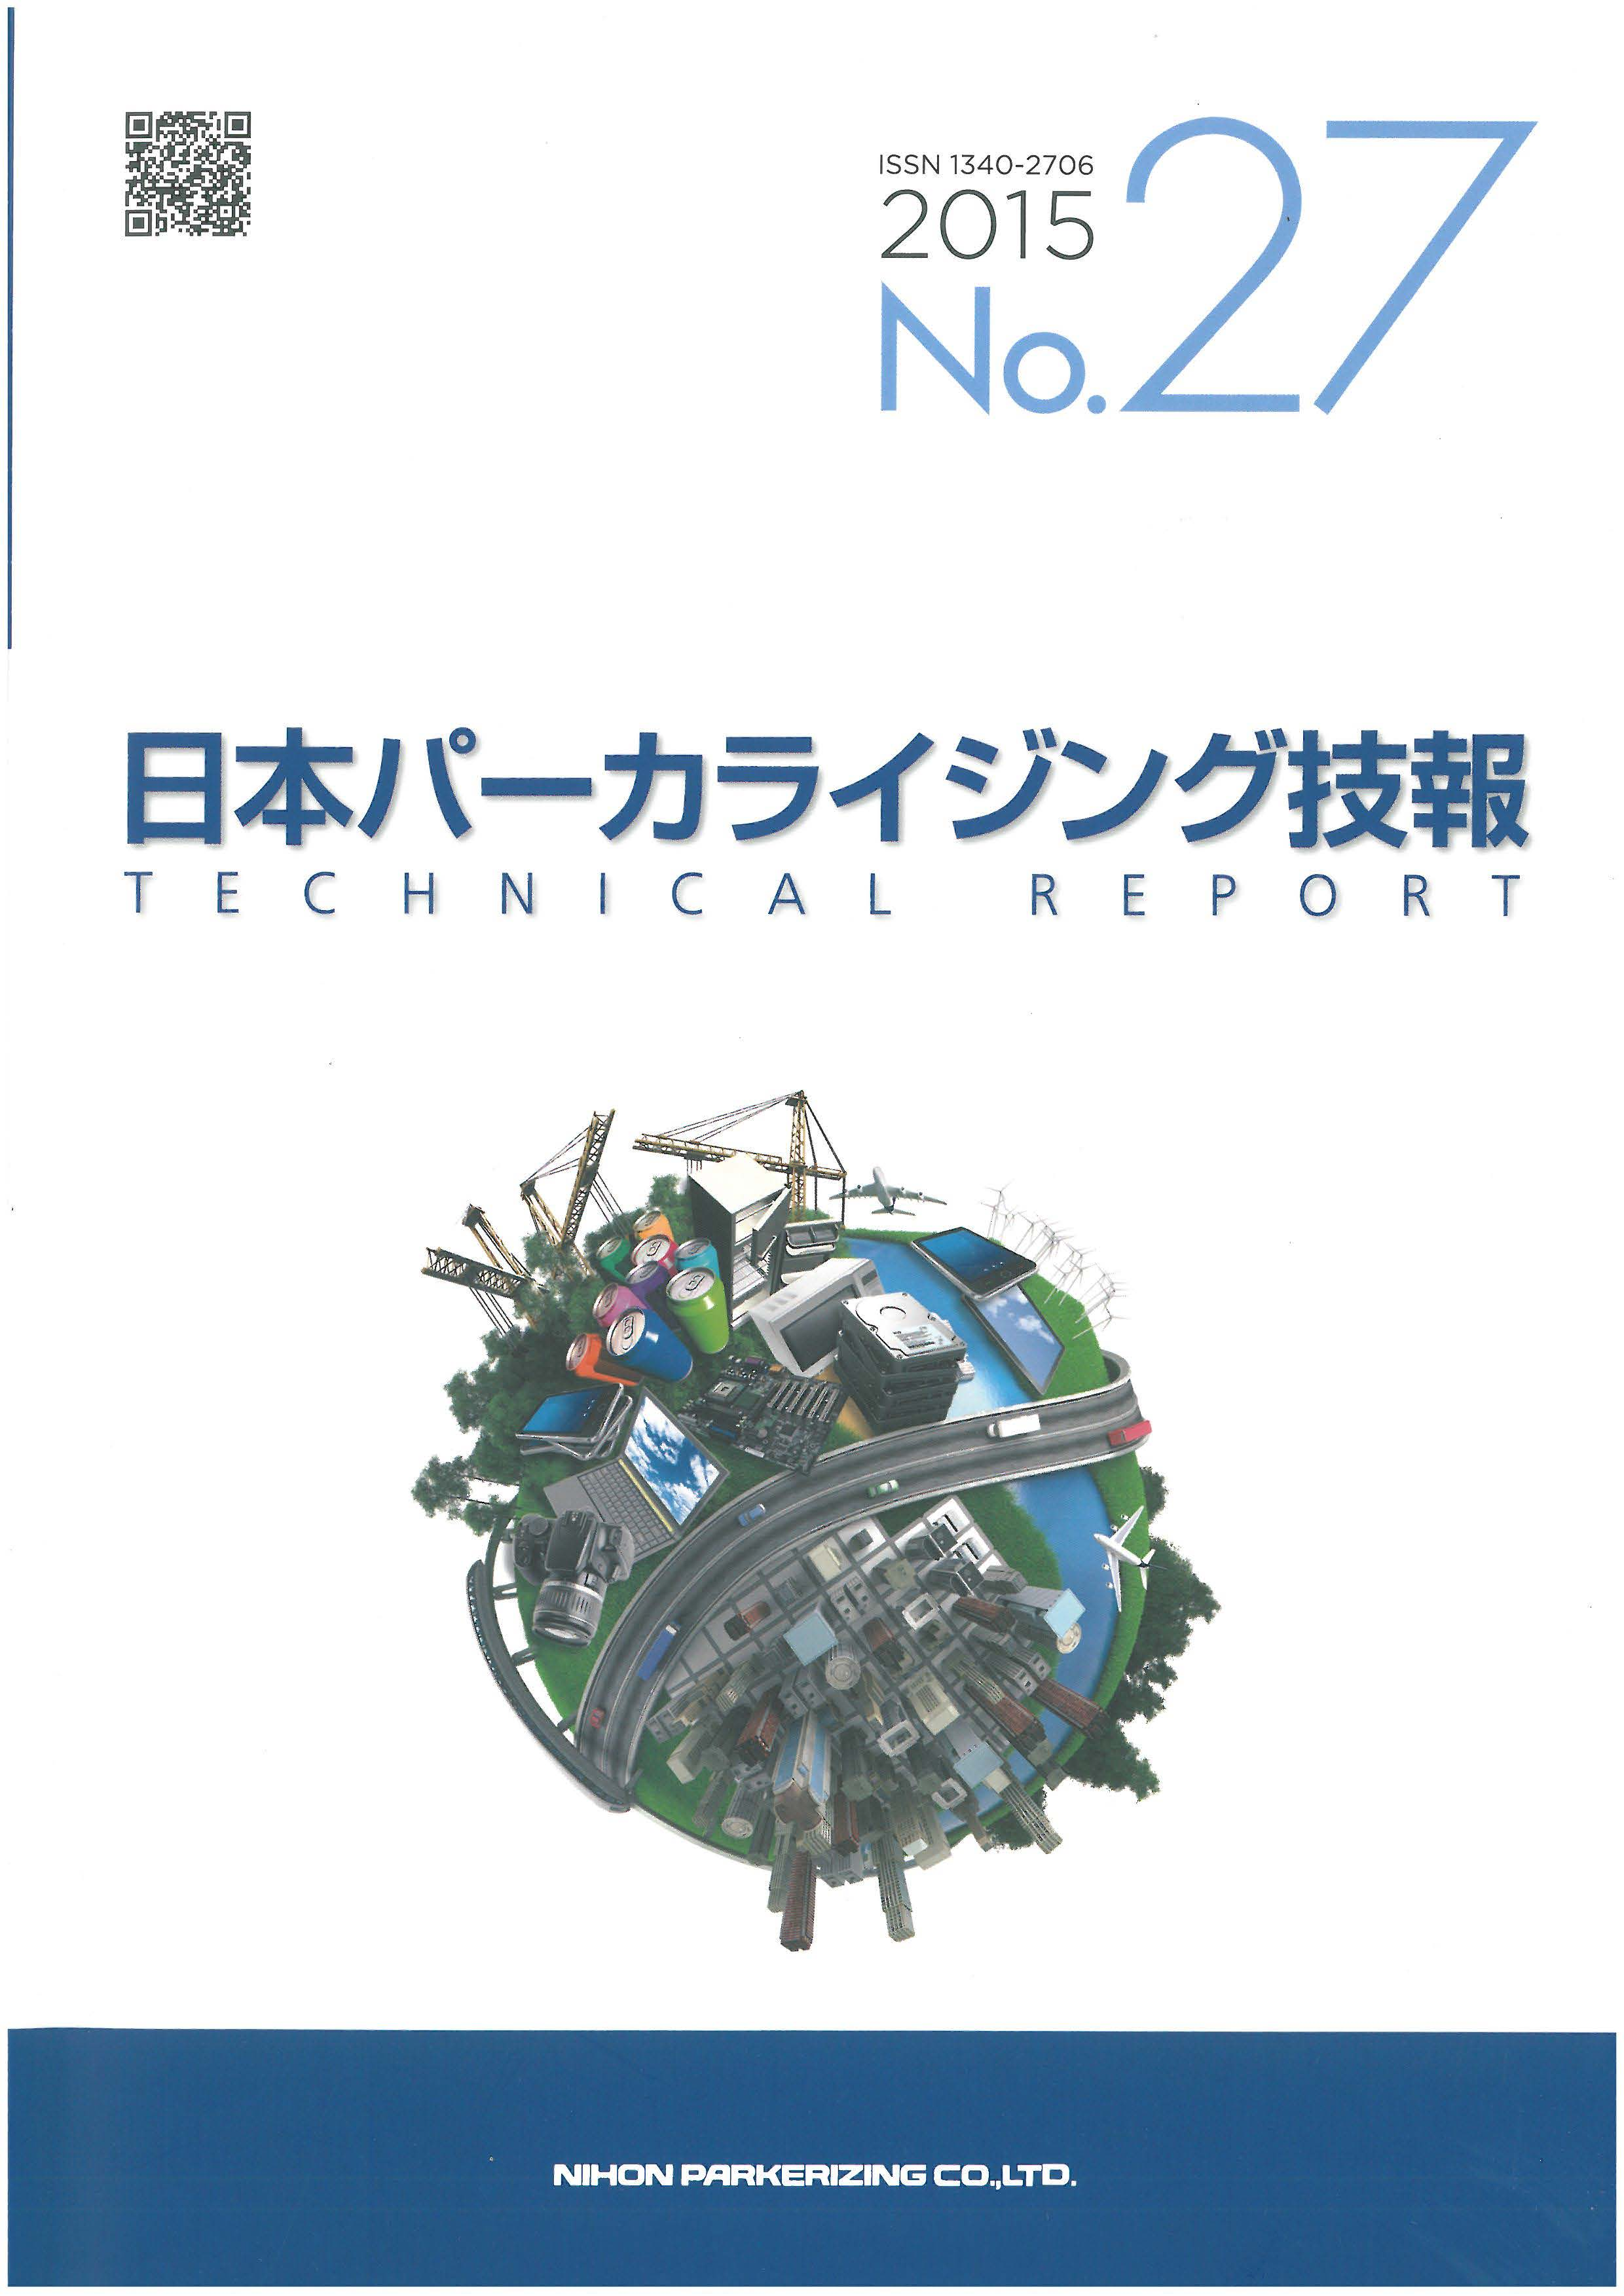 Parker Technical Report Nihon Parkerizing Co Ltd